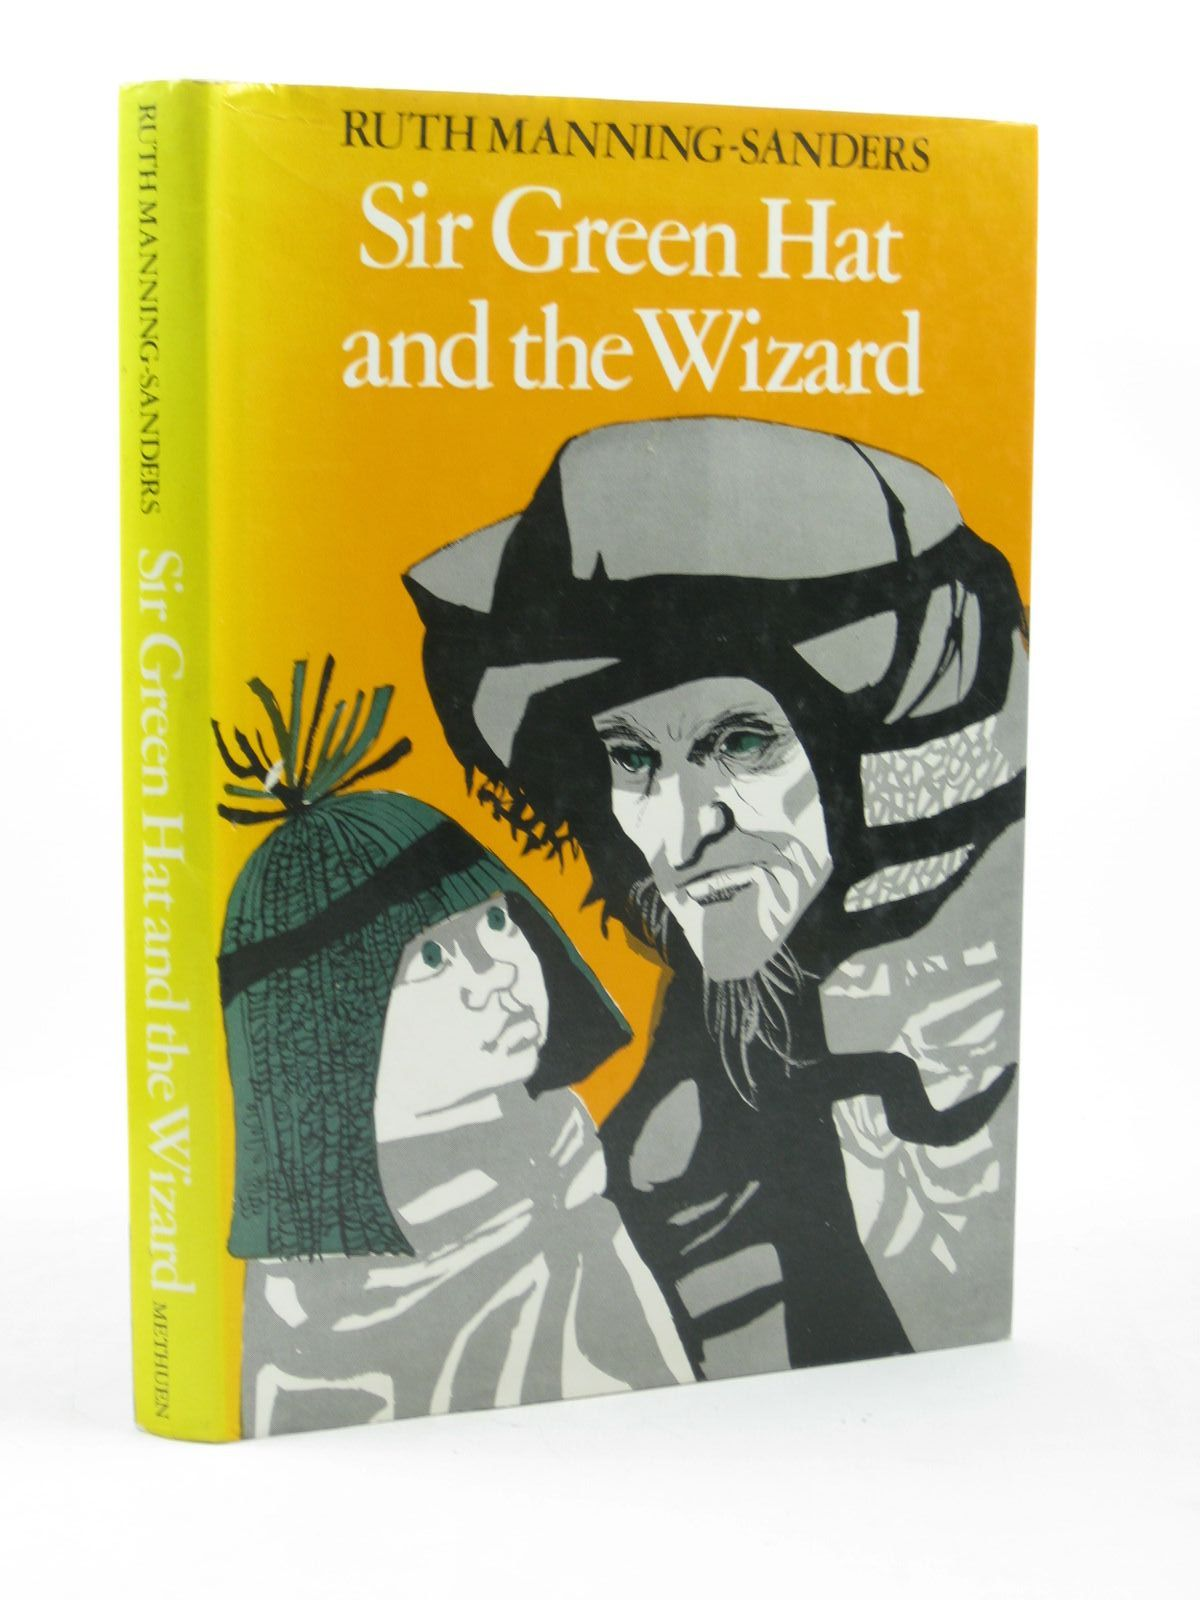 Photo of SIR GREENHAT AND THE WIZARD written by Manning-Sanders, Ruth illustrated by Stobbs, William published by Methuen Children's Books Ltd. (STOCK CODE: 1502670)  for sale by Stella & Rose's Books